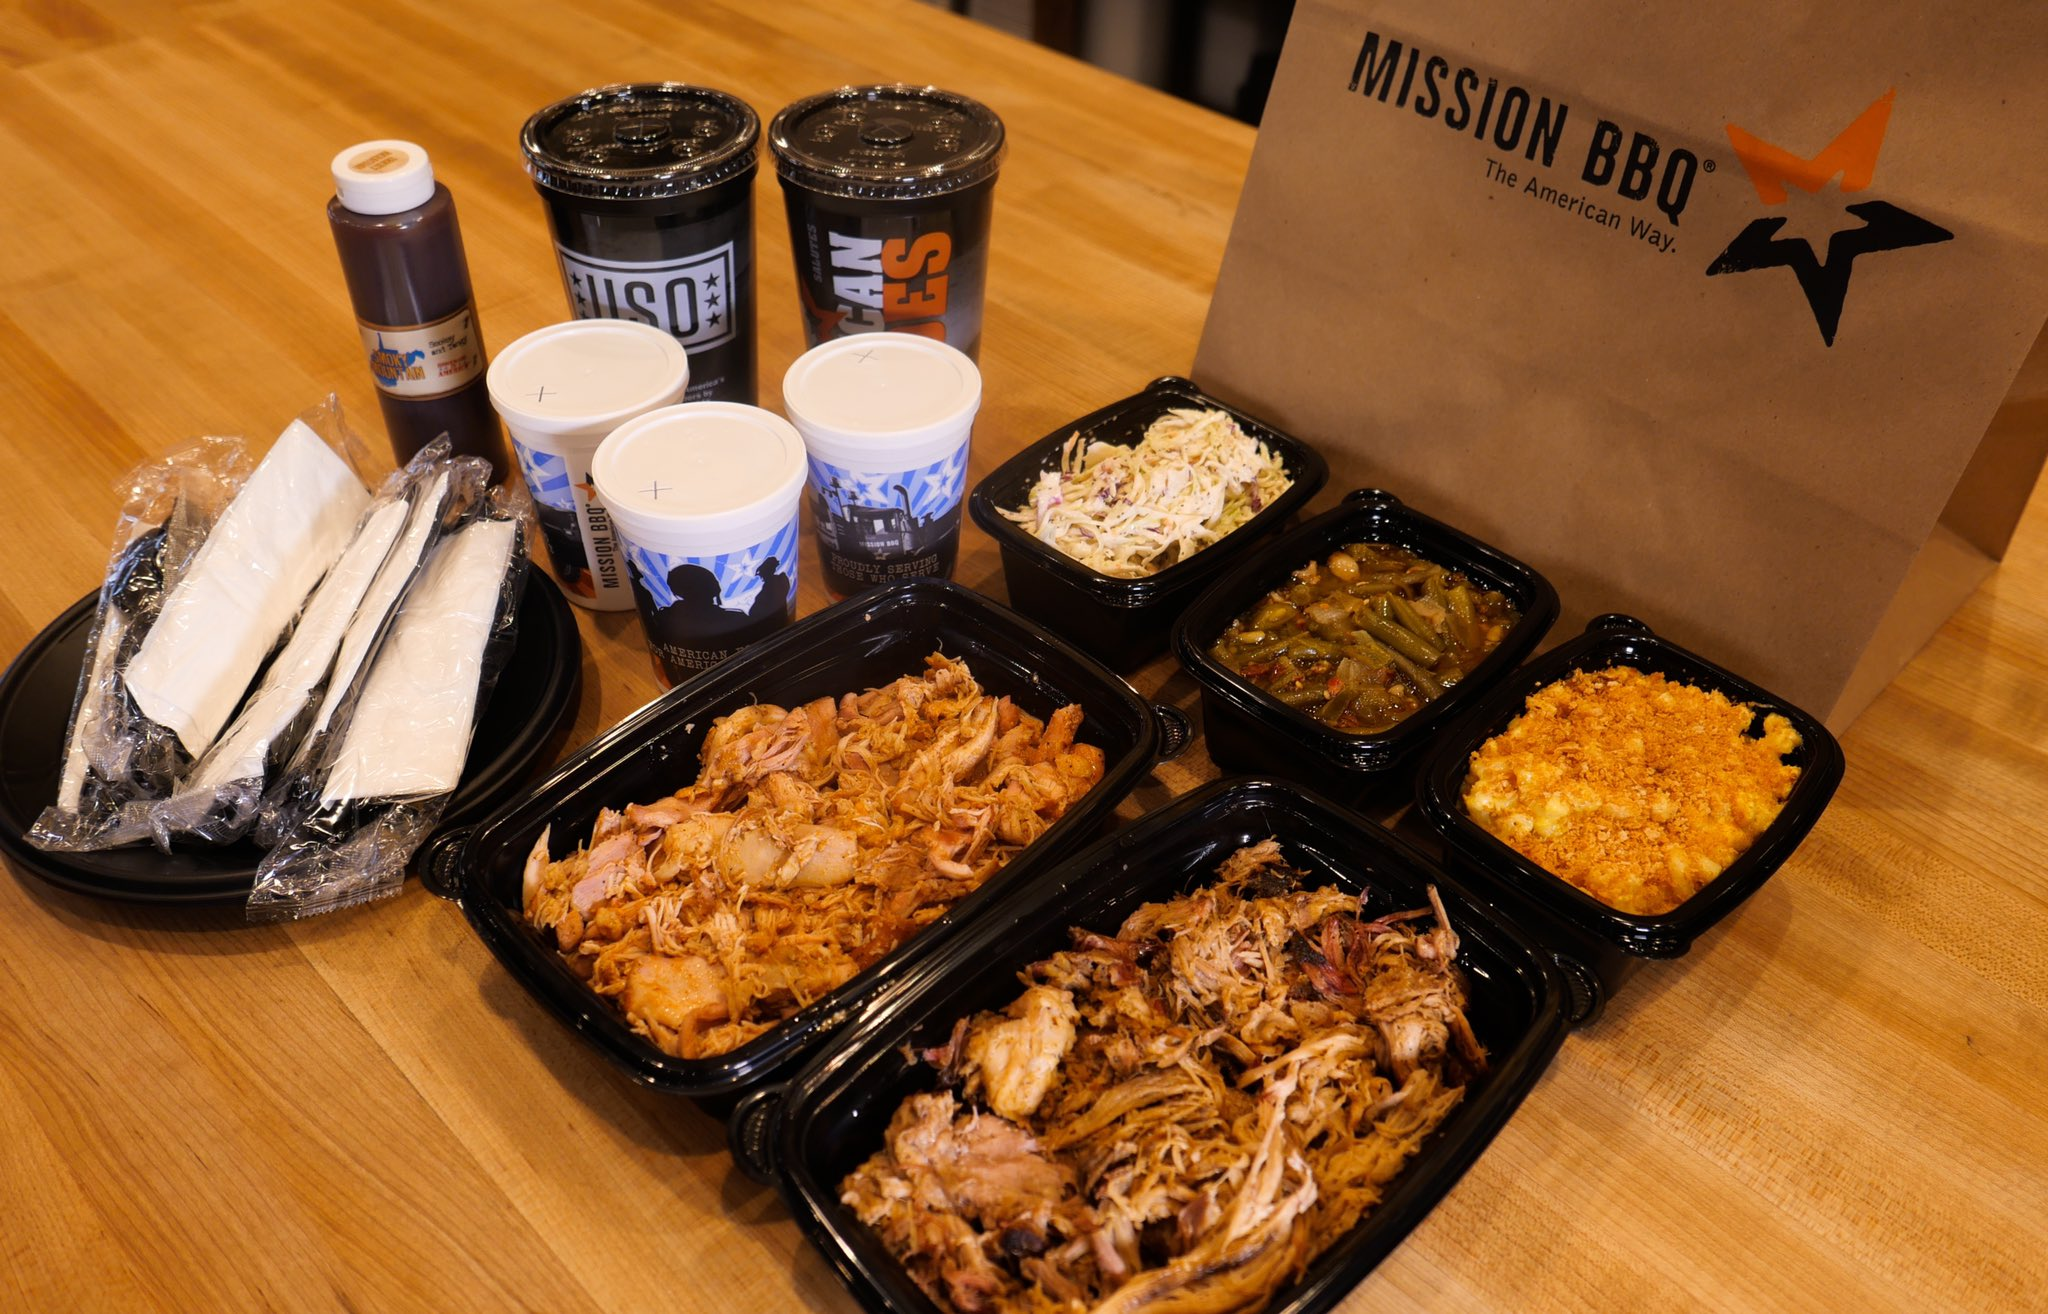 Mission Bbq On Twitter Feed A Family Of 5 Mission Bbq Is Open And Ready To Serve You With Family Pick Up Packs To Go Orders Curbside Contact Free Pickup Plus Free Local